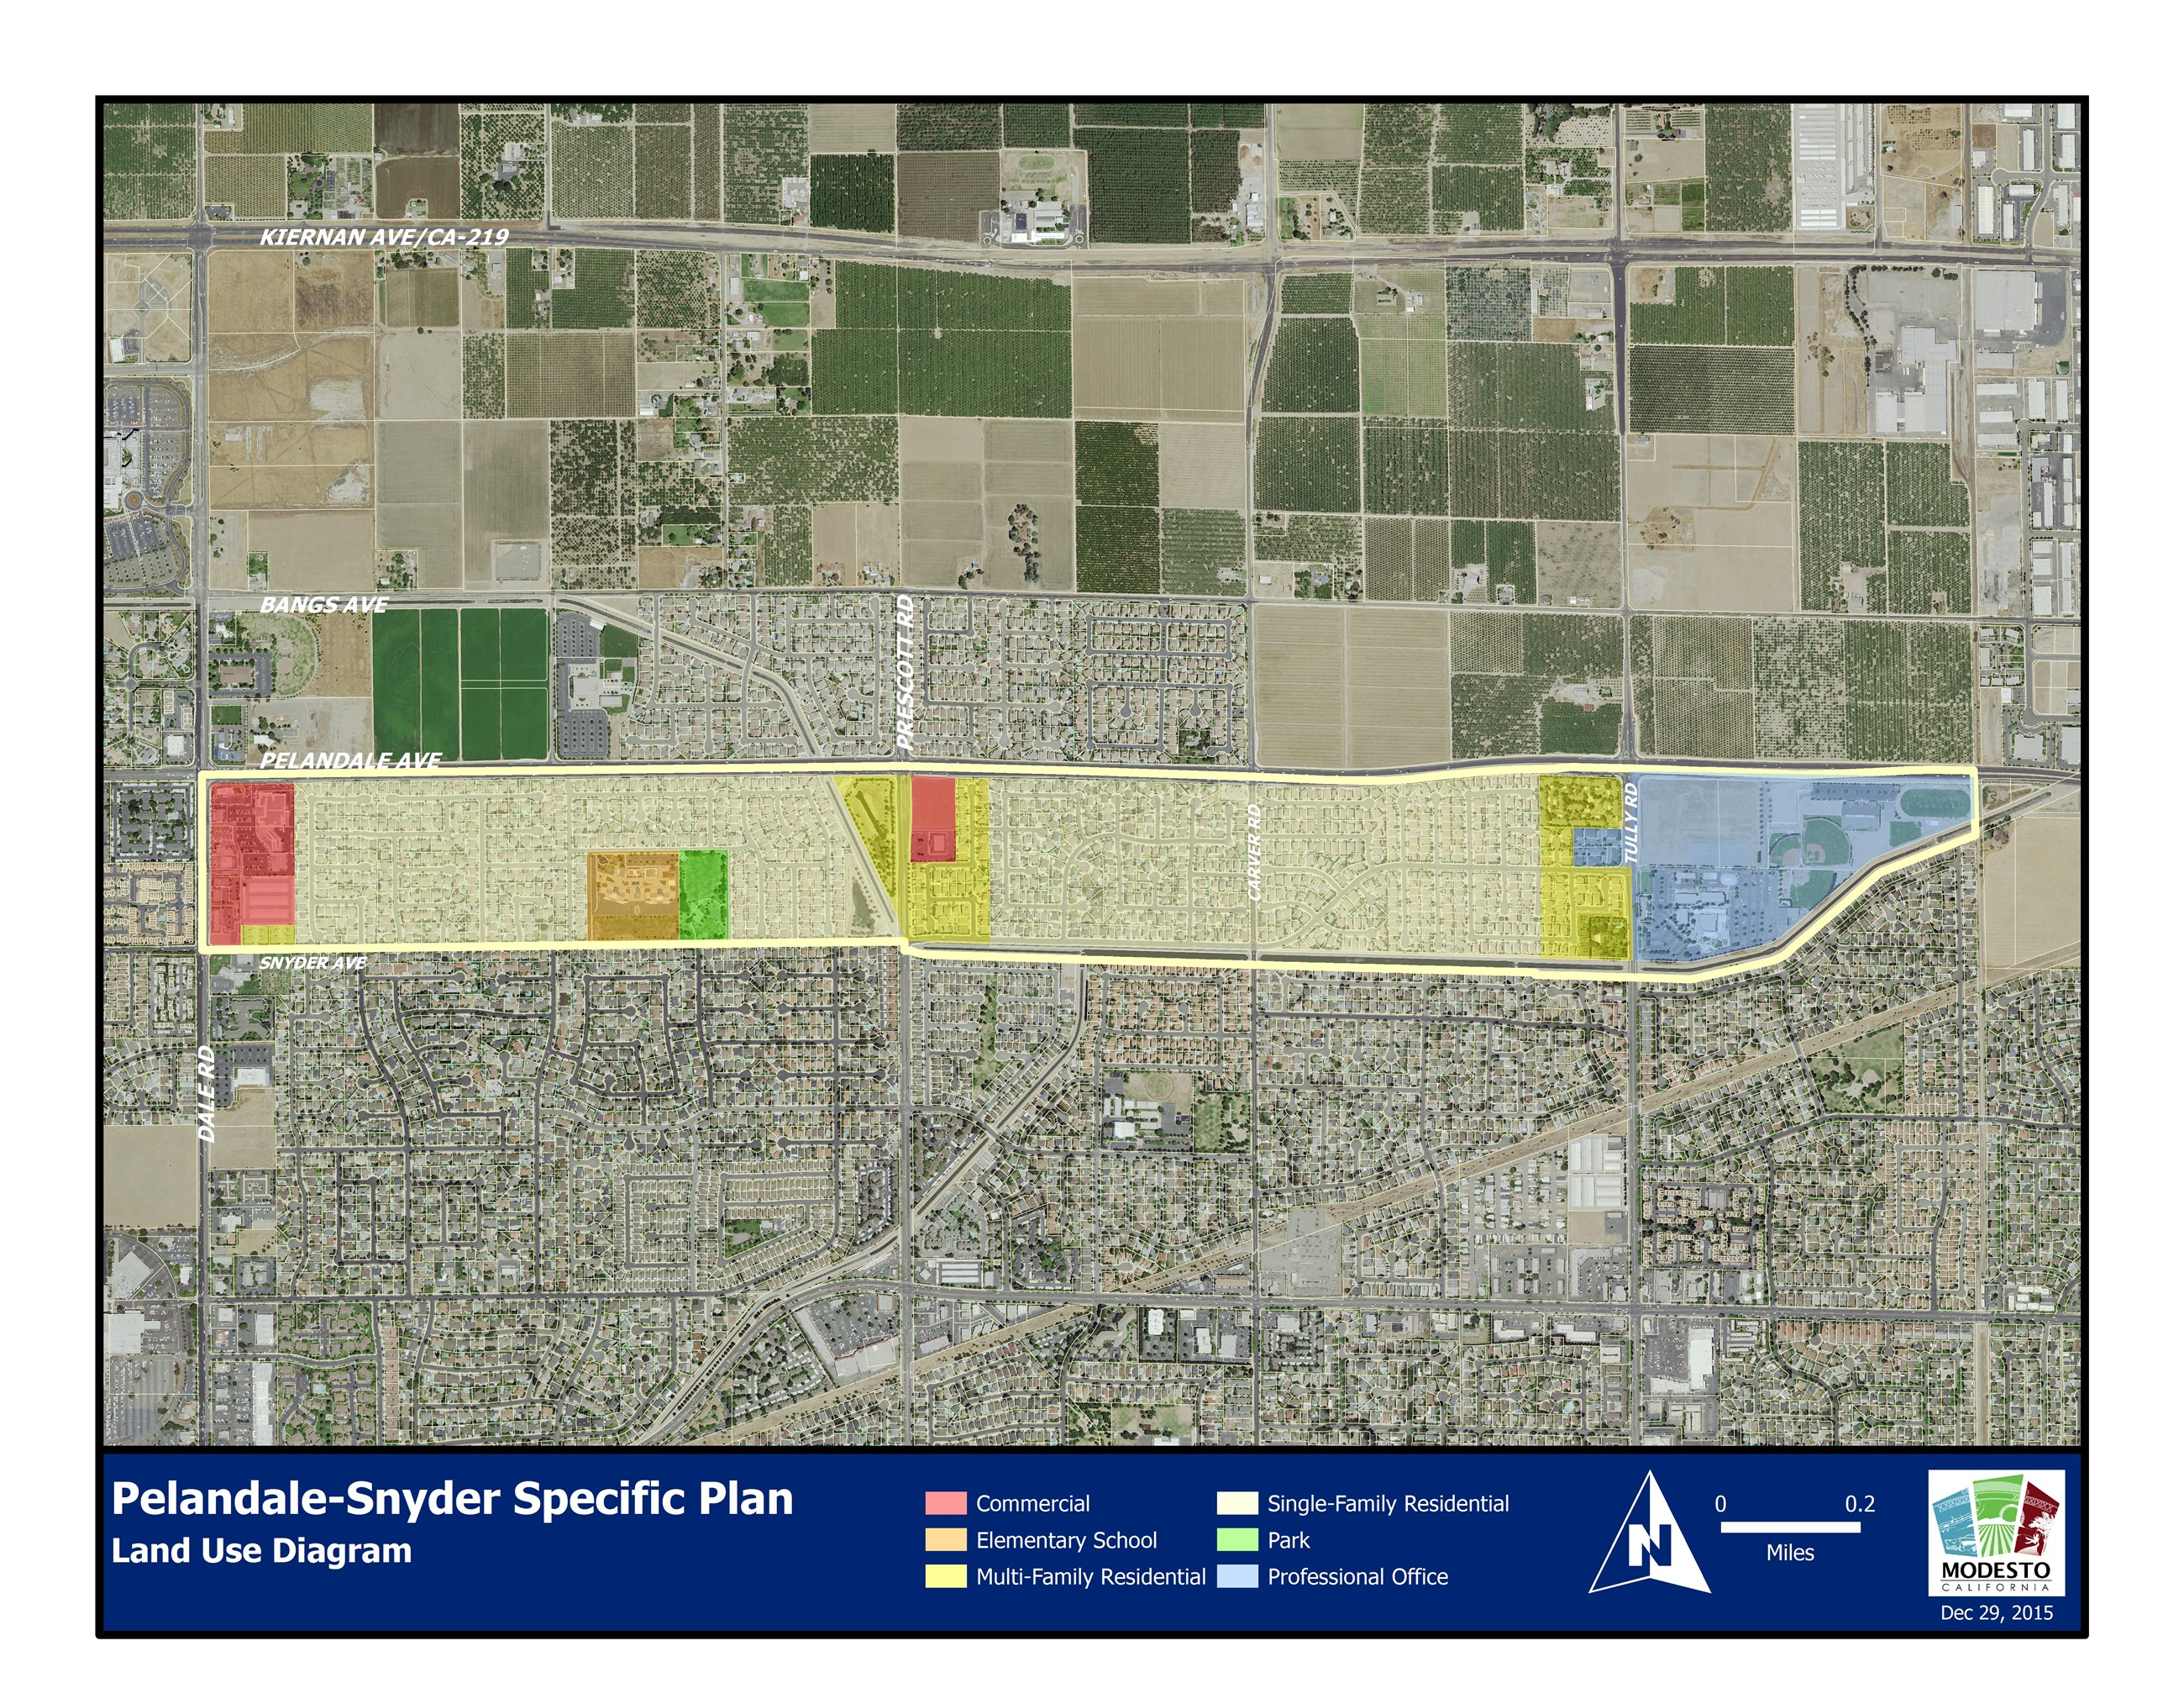 Pelandale Snyder Specific Plan Land Use Diagram